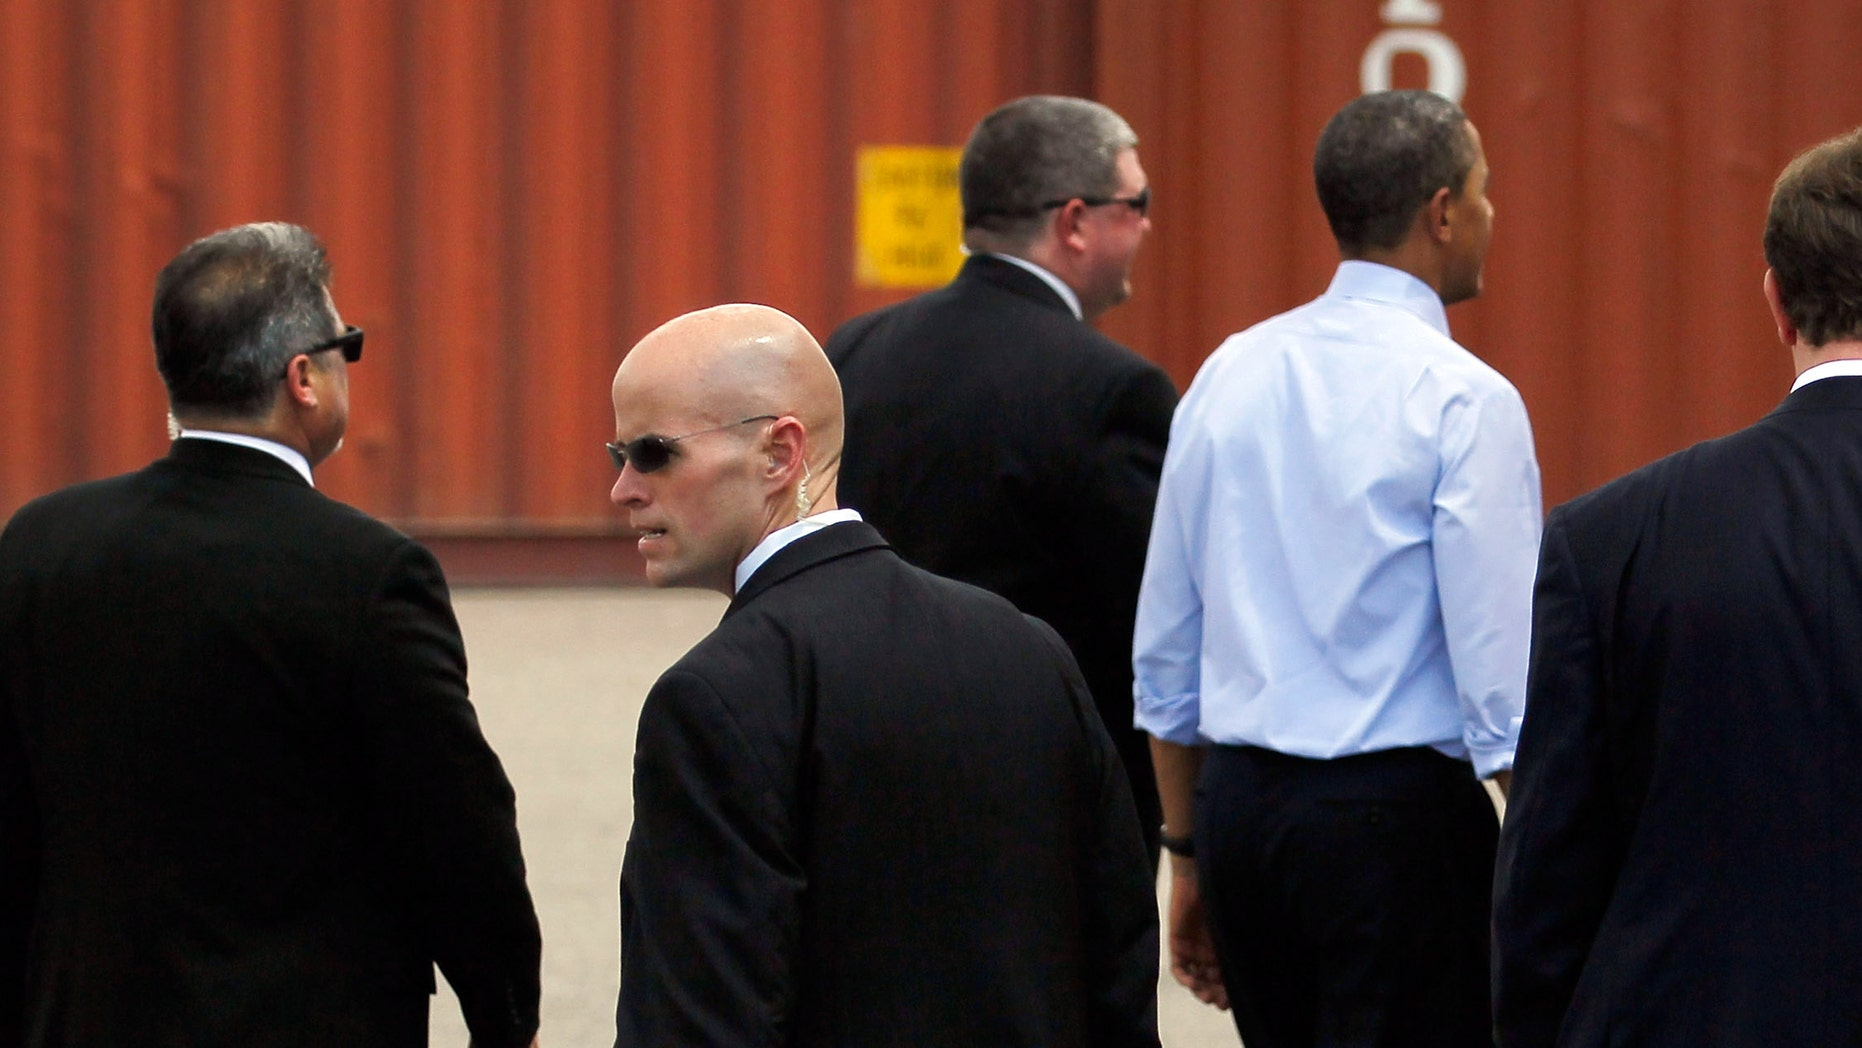 TAMPA, FL - APRIL 13:  U.S. President Barack Obama (blue shirt) surrounded by Secret Service agents walks away after a visit to the Port of Tampa on April 13, 2012 in Tampa, Florida. The President, on his way to the Summit of the Americas in Colombia, used the visit to emphasis small business trade with countries in Latin America.  (Photo by Joe Raedle/Getty Images)